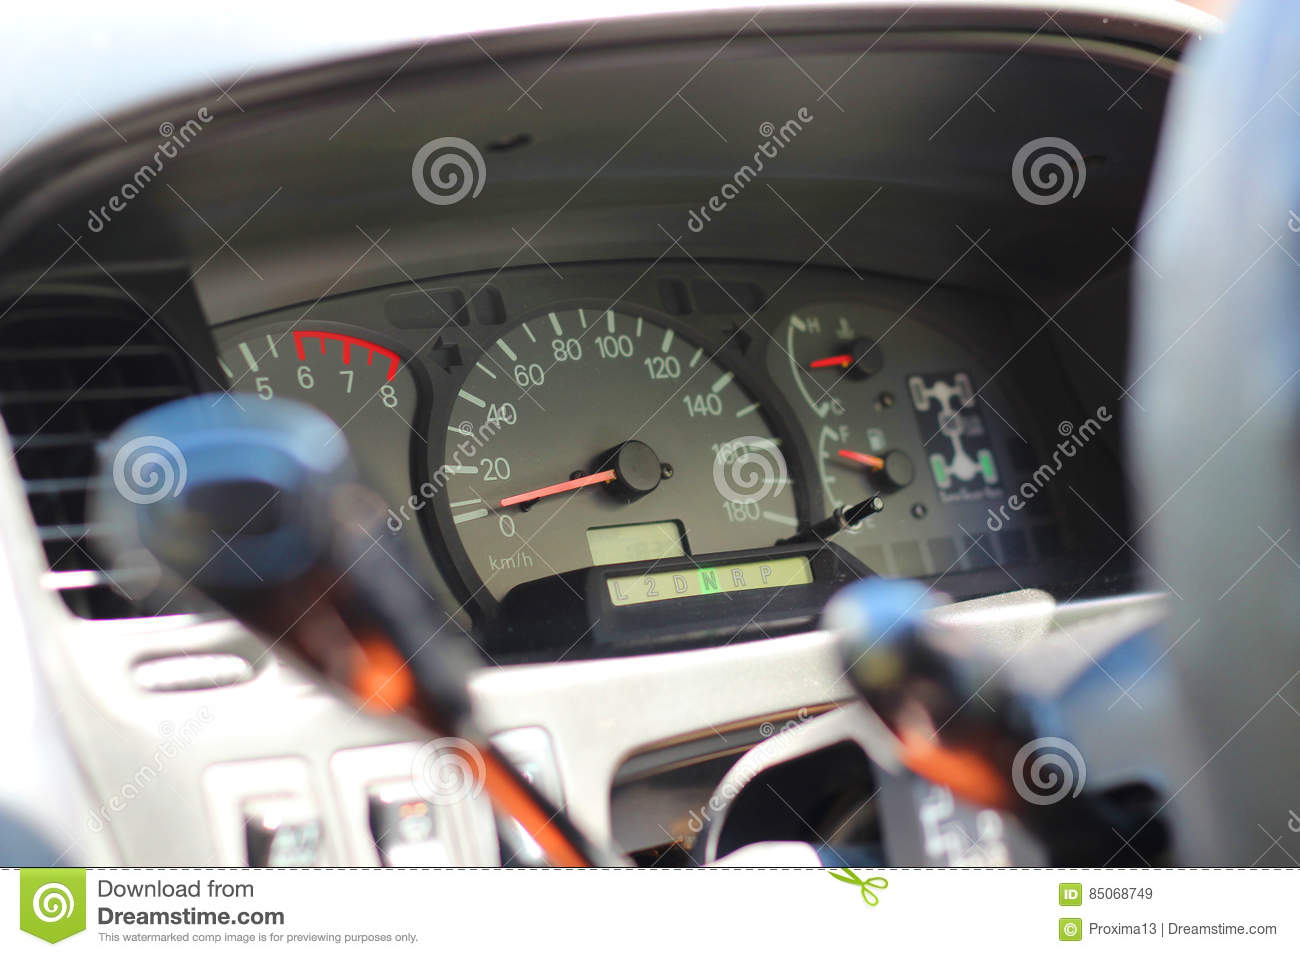 Close Up Shot Of The Dashboard A Car Stock Photo Image - Car image sign of dashboardcar dashboard icons stock photospictures royalty free car